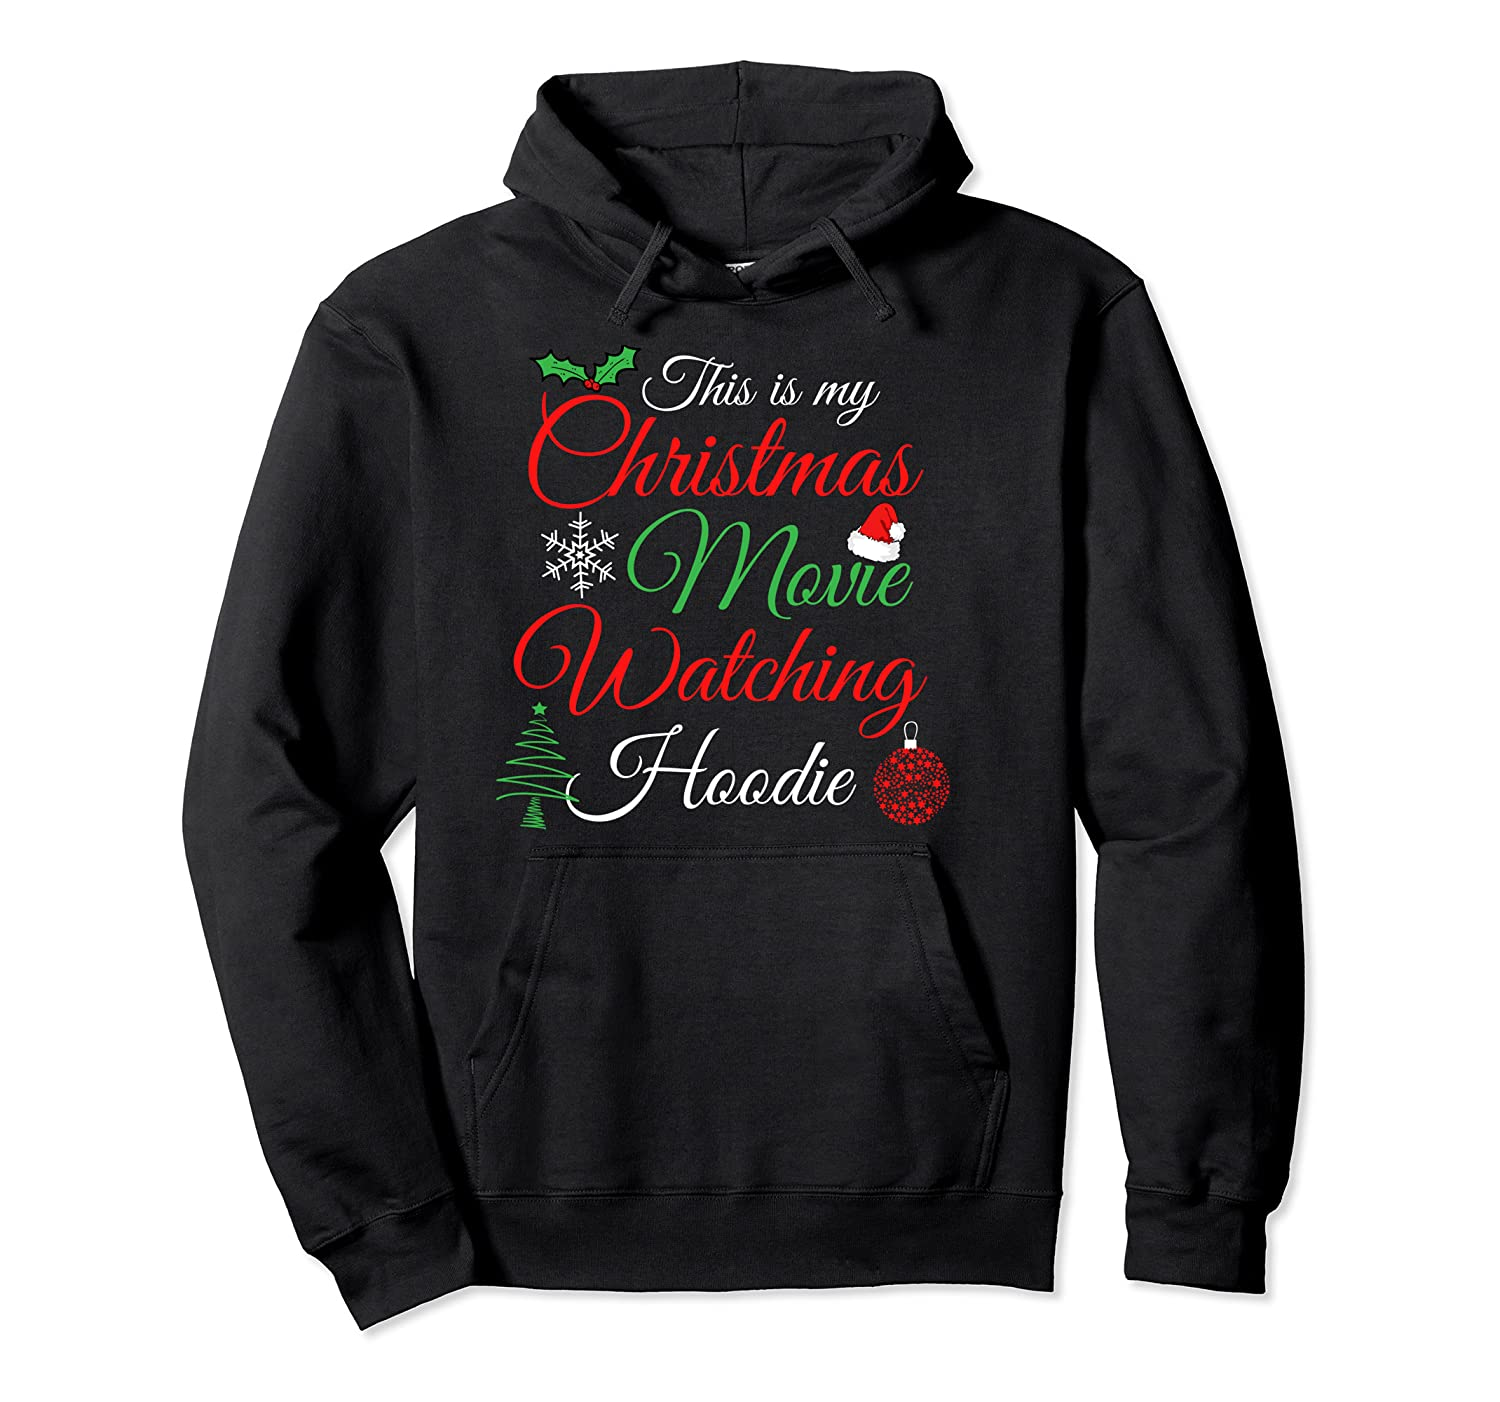 Funny Xmas Film Gifts, This Is My Christmas Movie Watching Pullover Hoodie